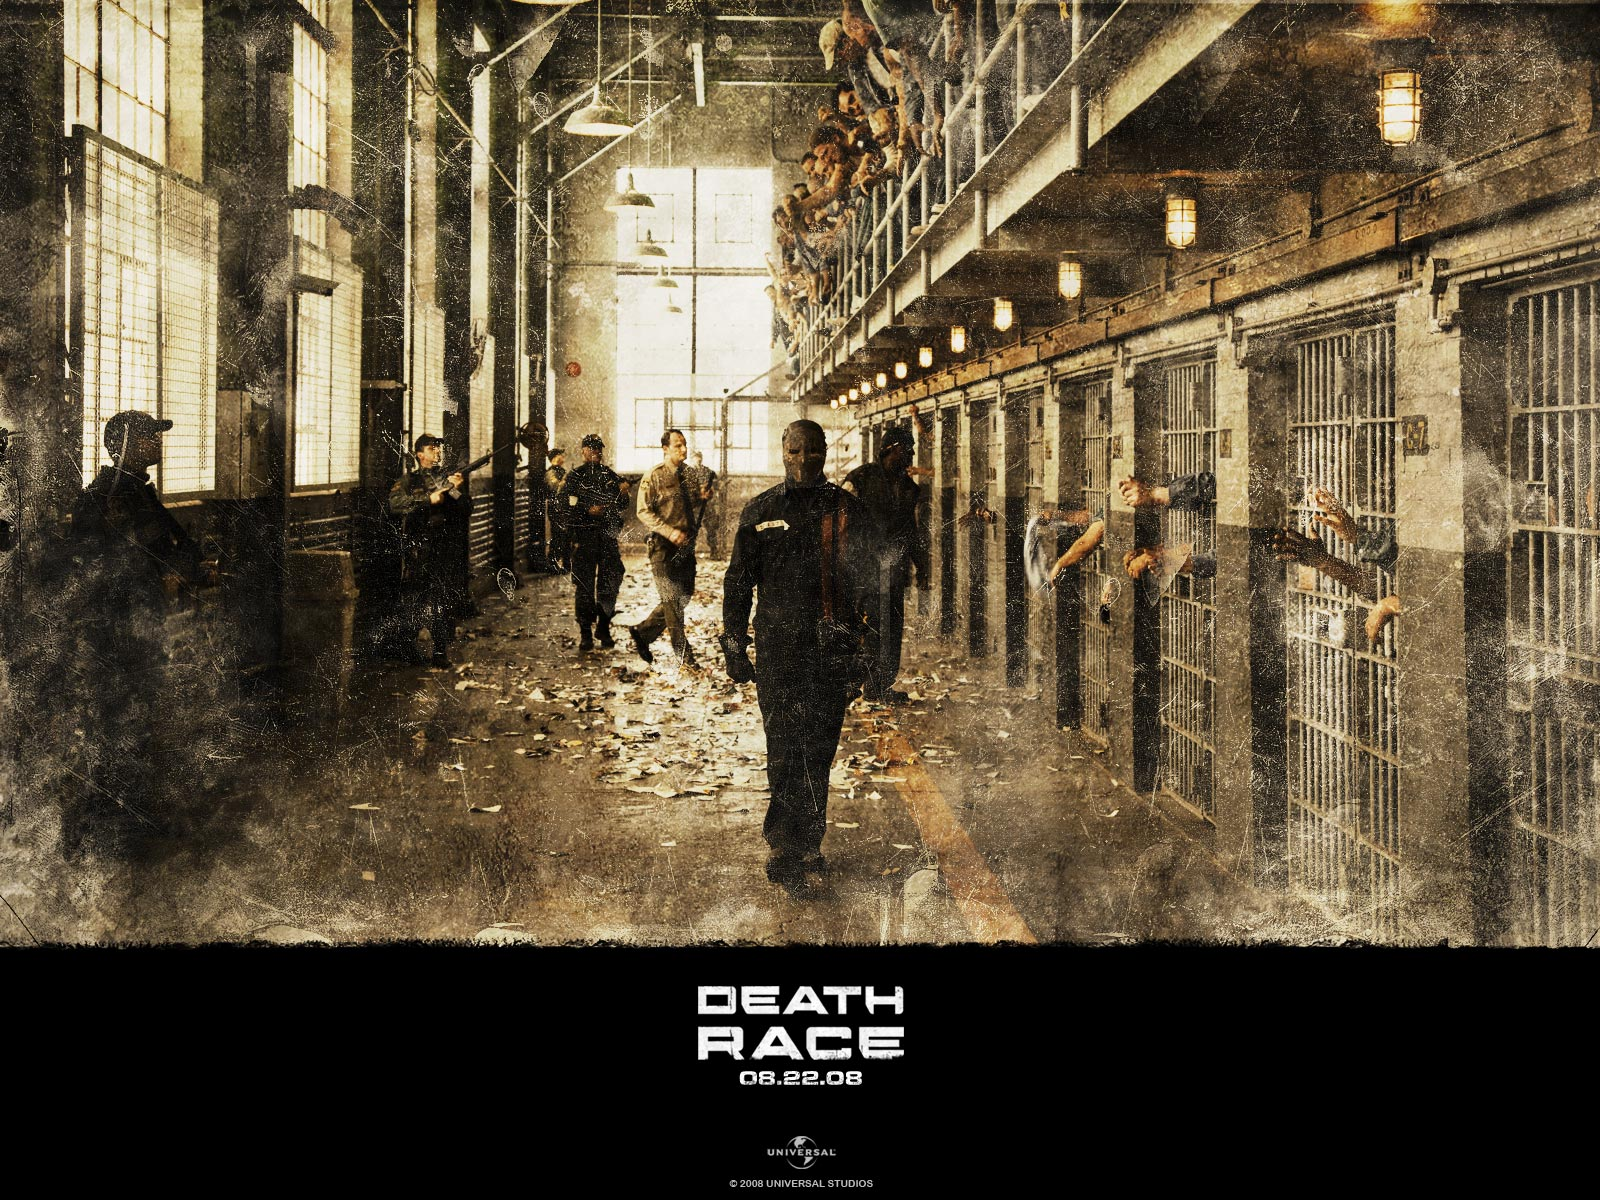 death race 002 | free desktop wallpapers for widescreen, hd and mobile